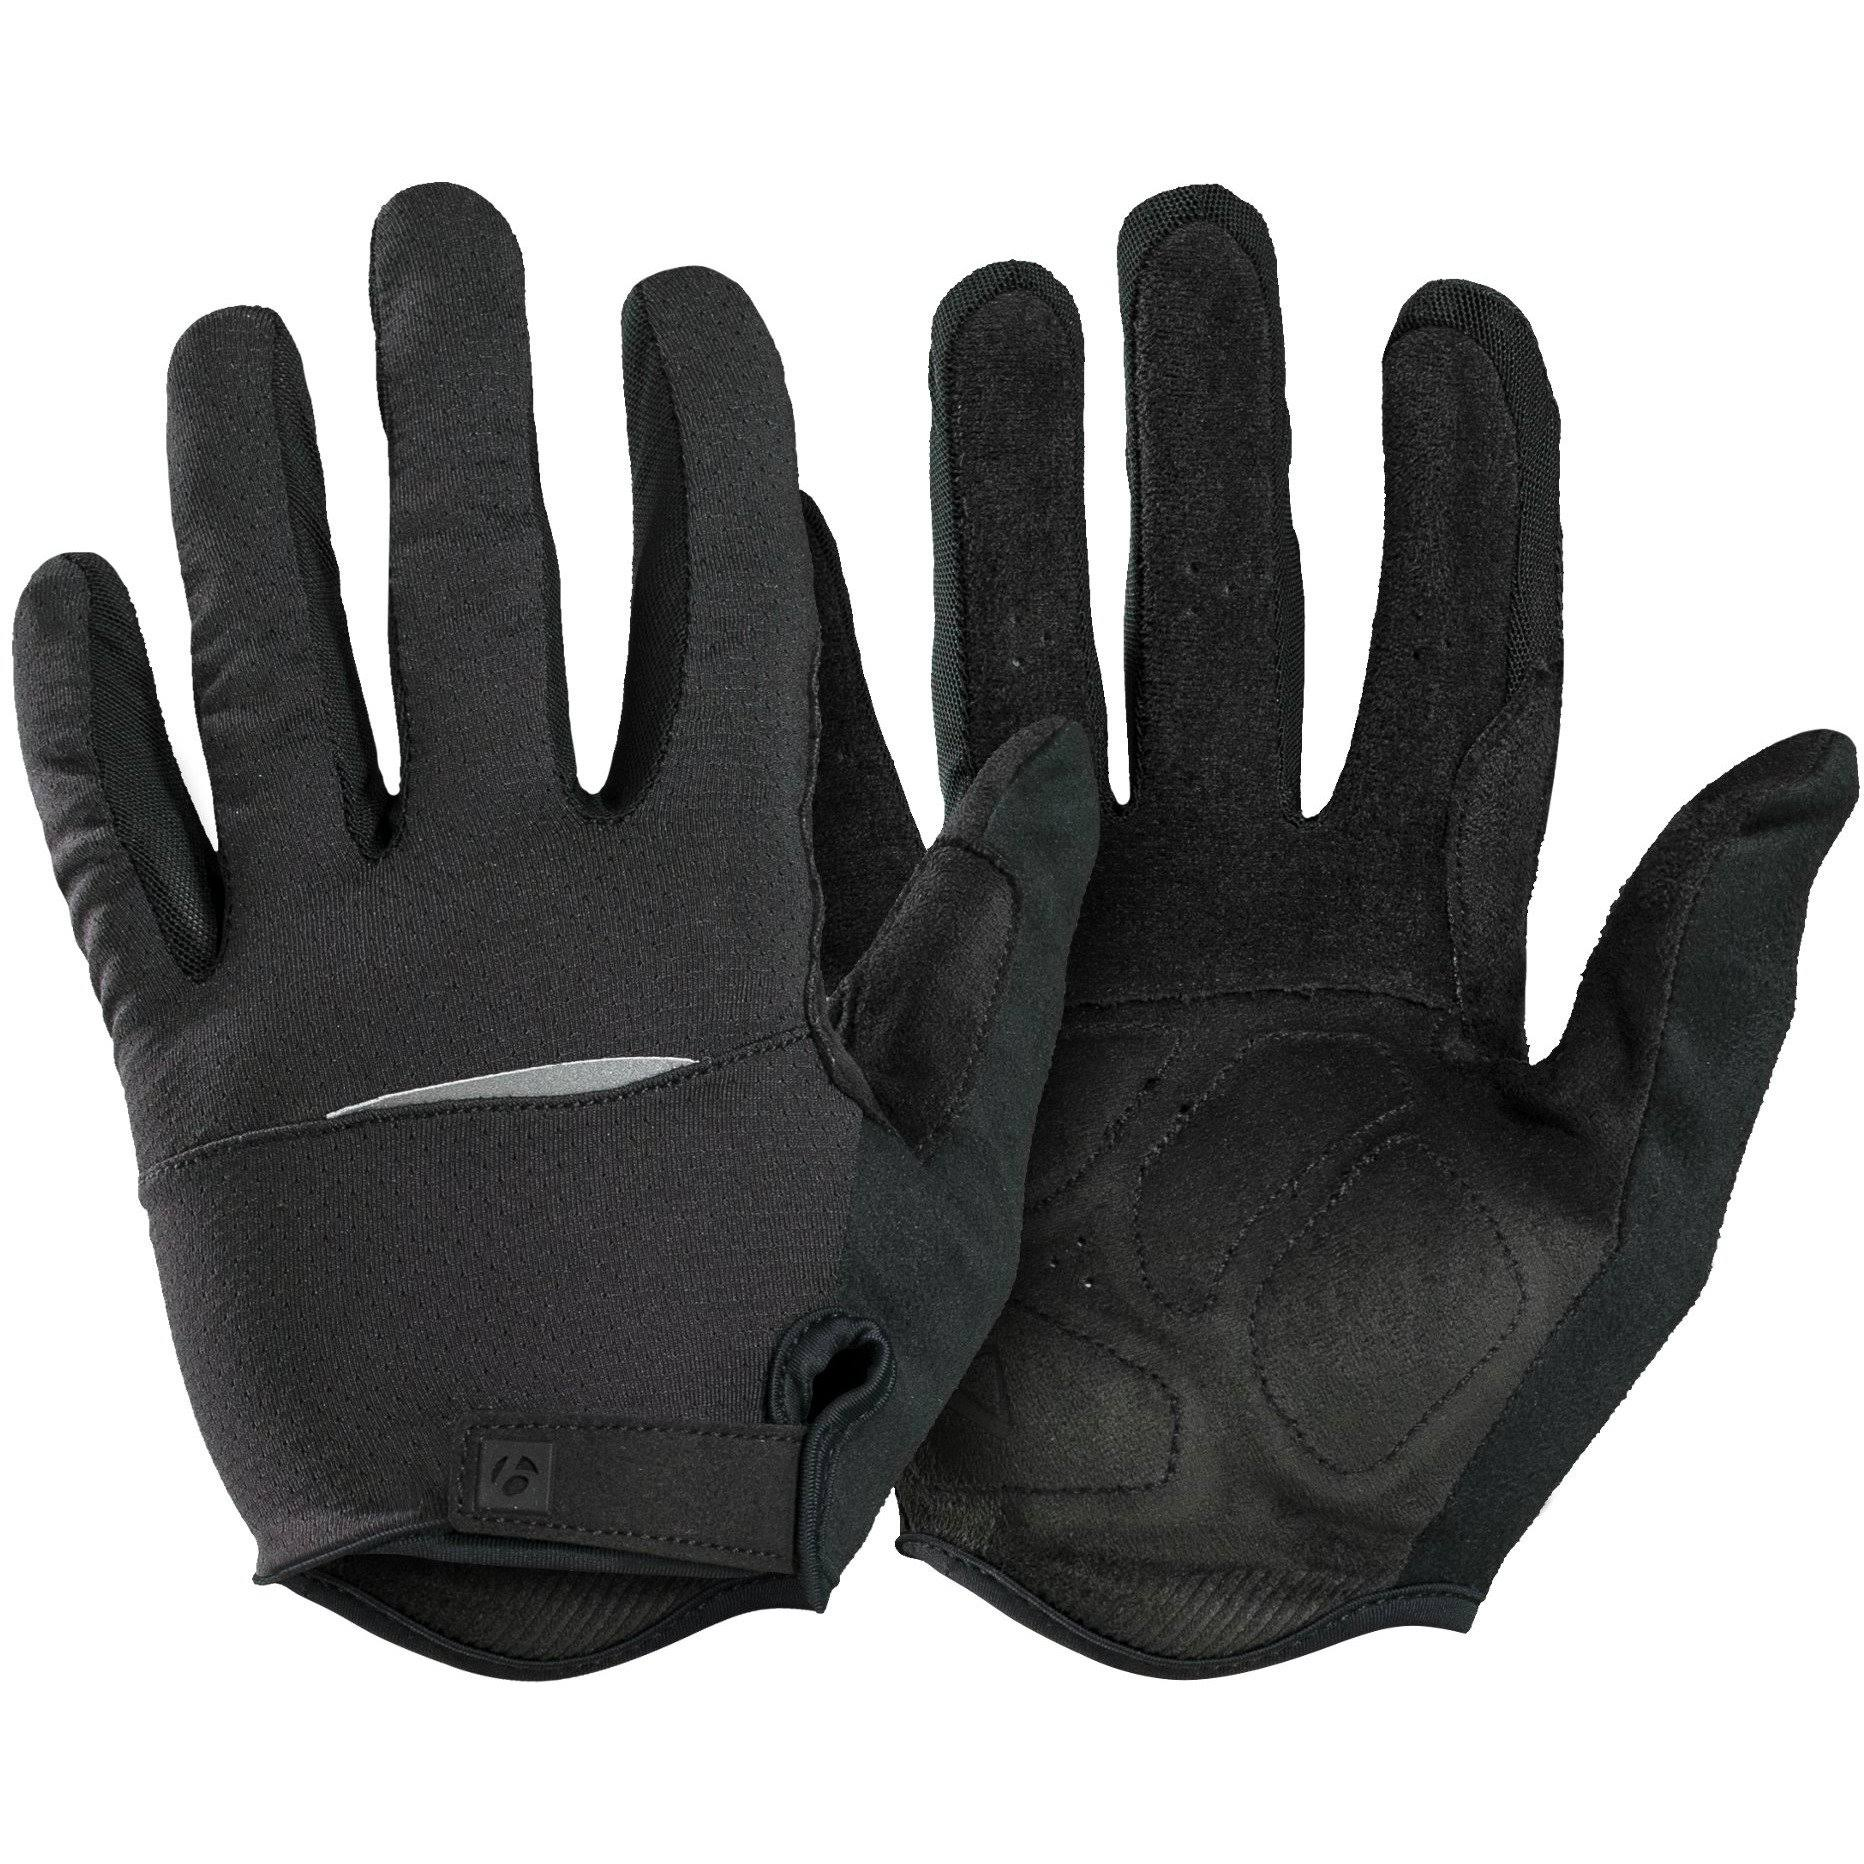 Bontrager Circuit Full Finger Cycling Glove - Black - X-Large